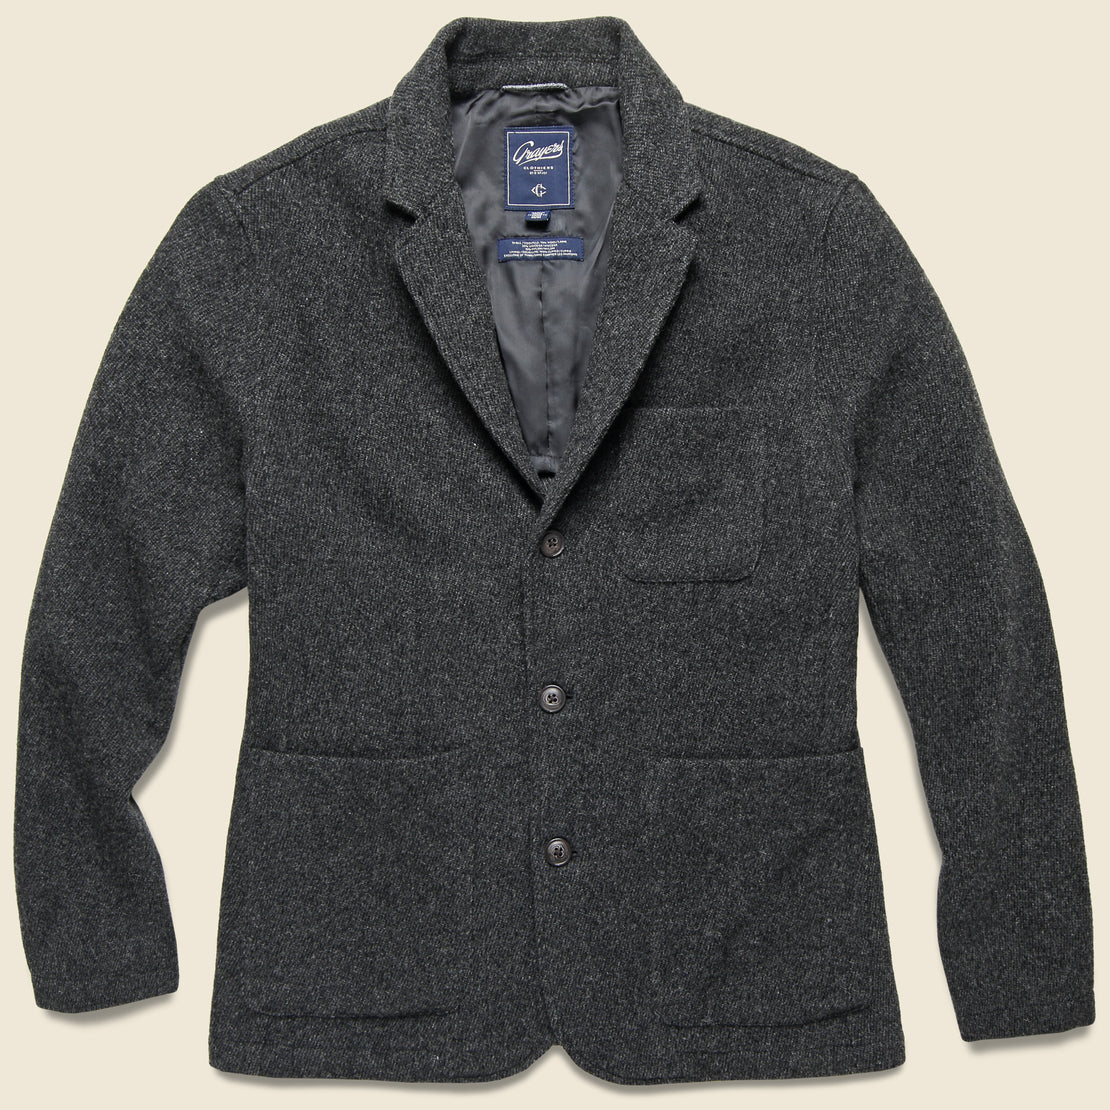 Grayers Hutton Wool Twill Sport Coat - Charcoal